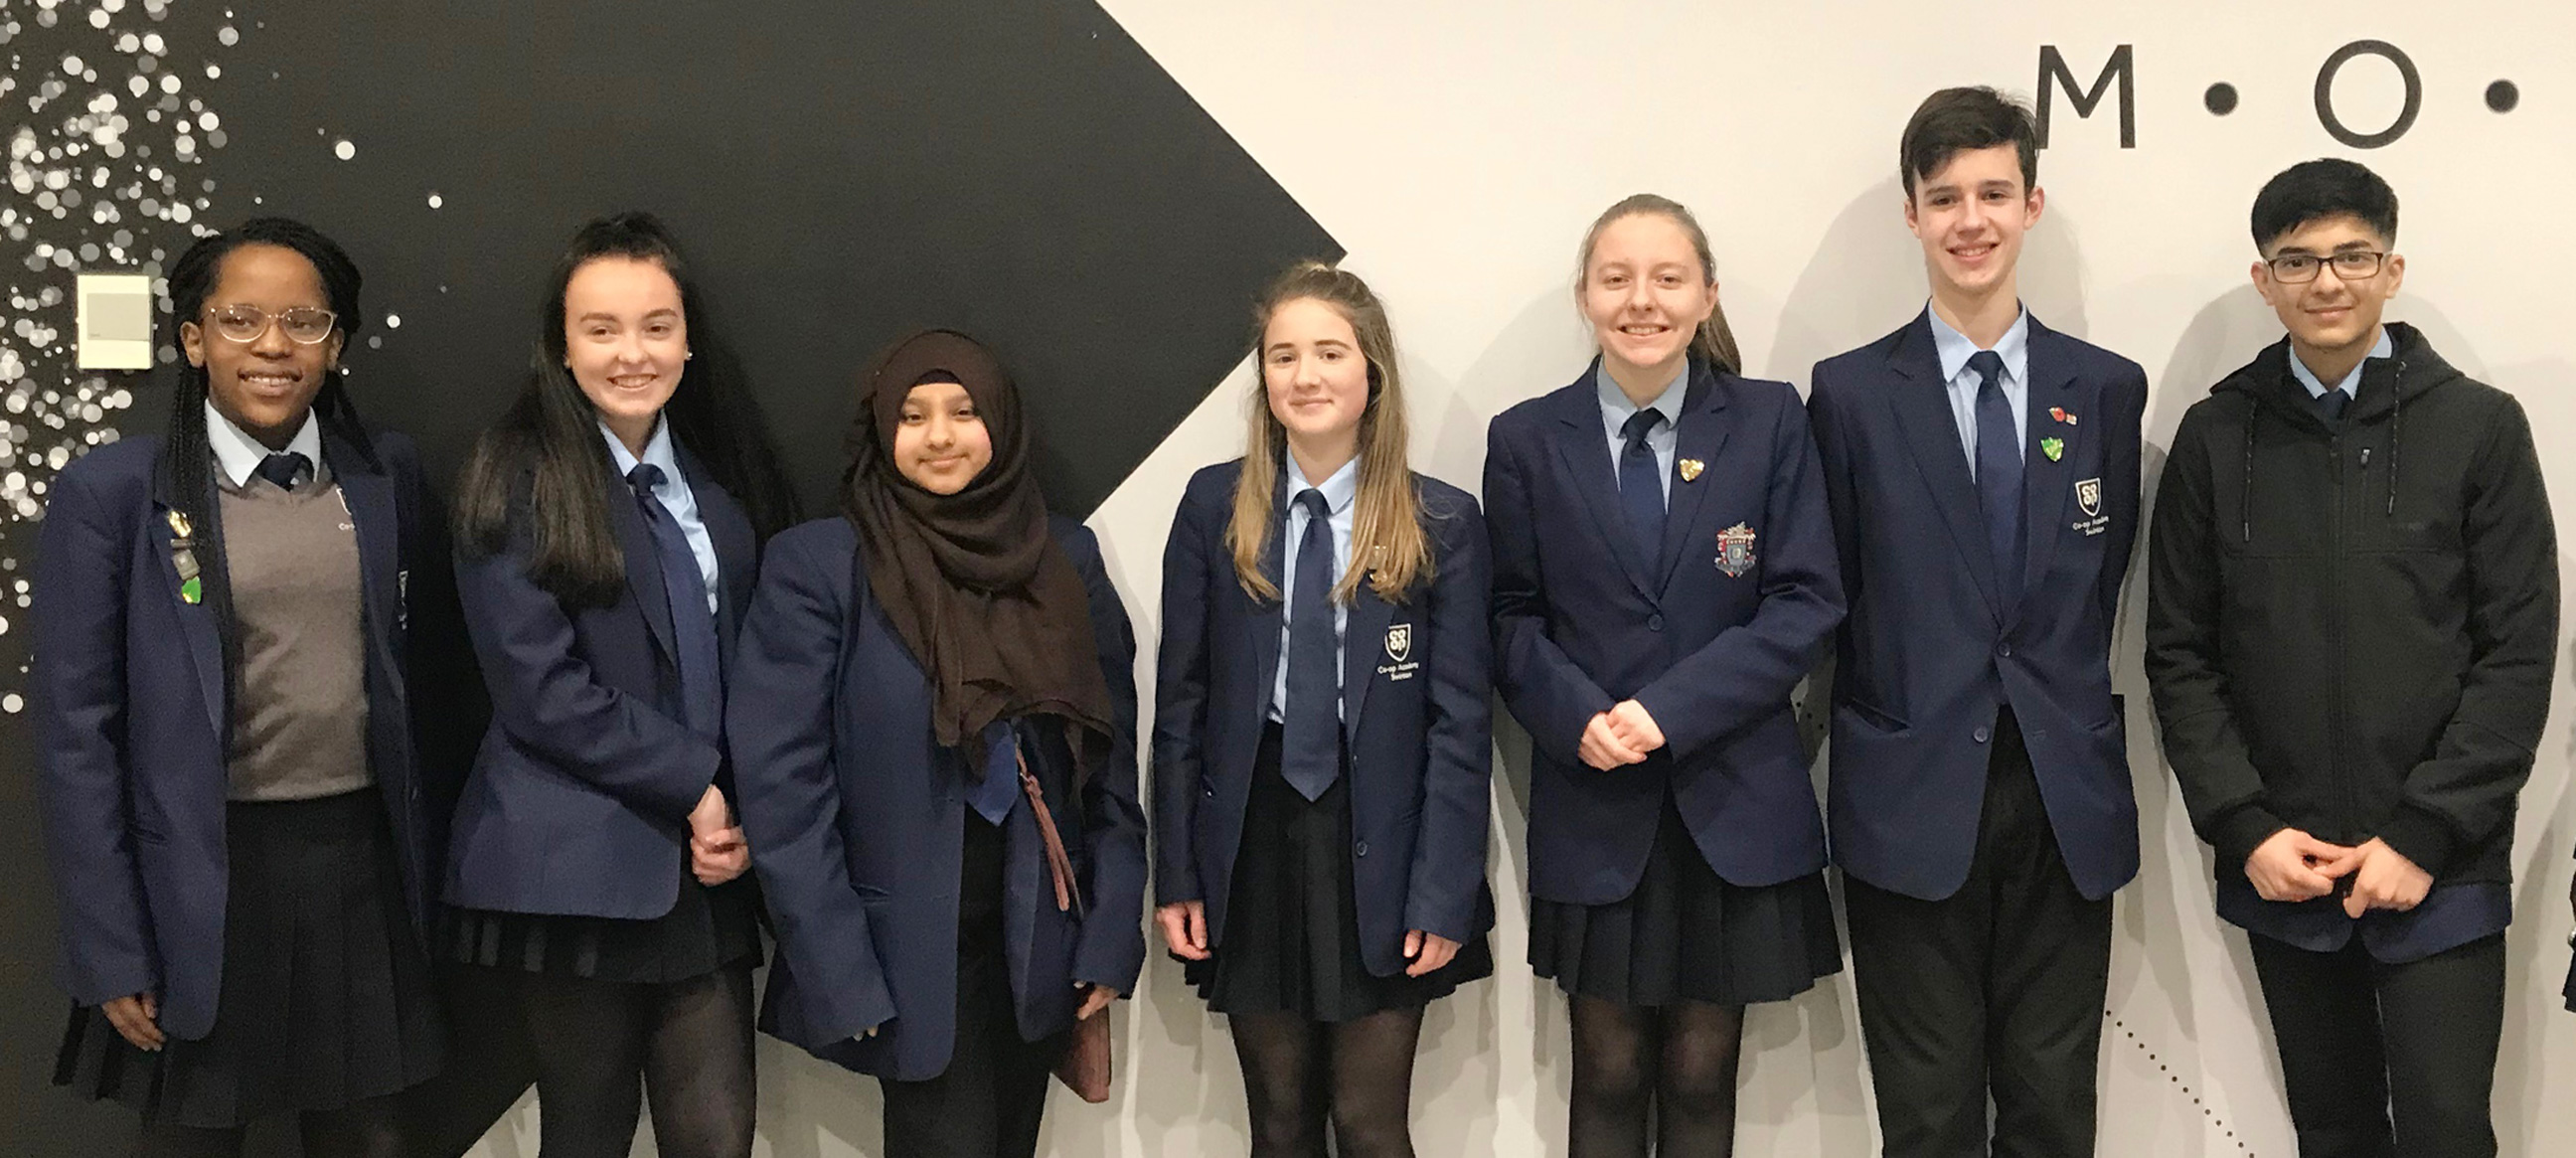 Year 10 students complete 'The Brilliant Club' scholarship